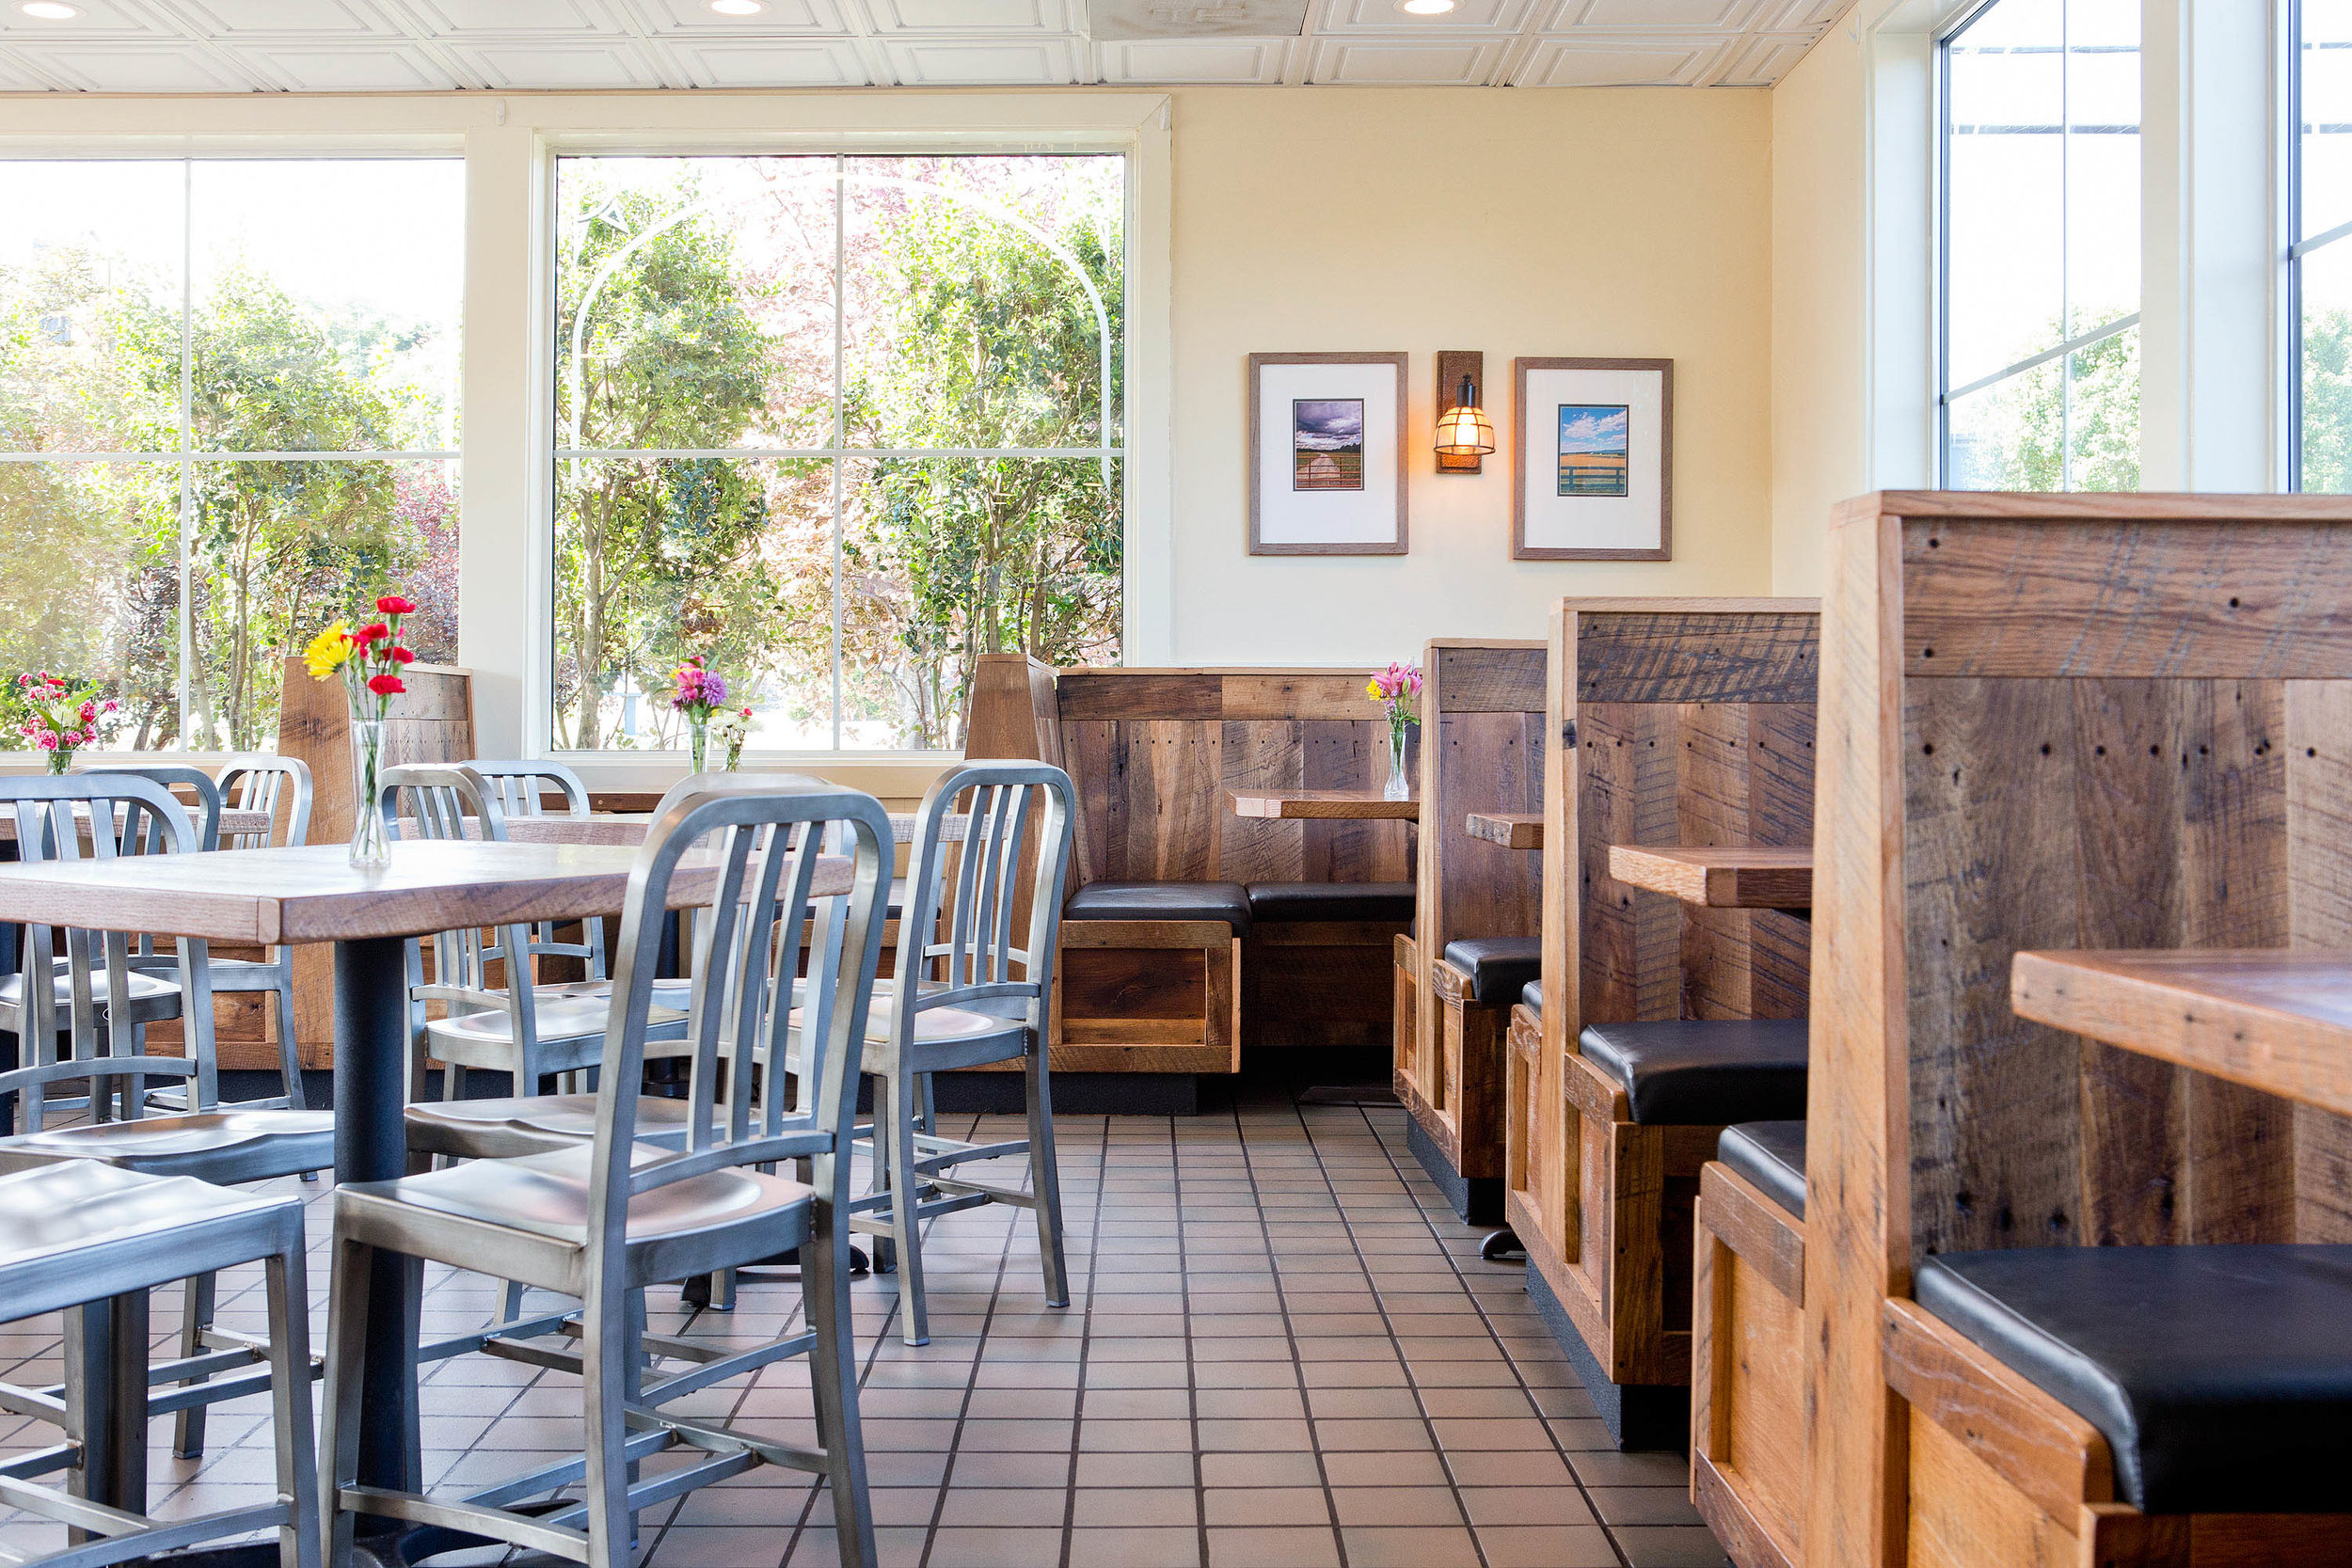 It was a joy to take this project at  Spelunkers , a family-owned burger joint, in Front Royal, VA. With a sunny atmosphere and excellent local food, it seemed fitting to design a space as warm and charming as the local fixture's delightful reputation.